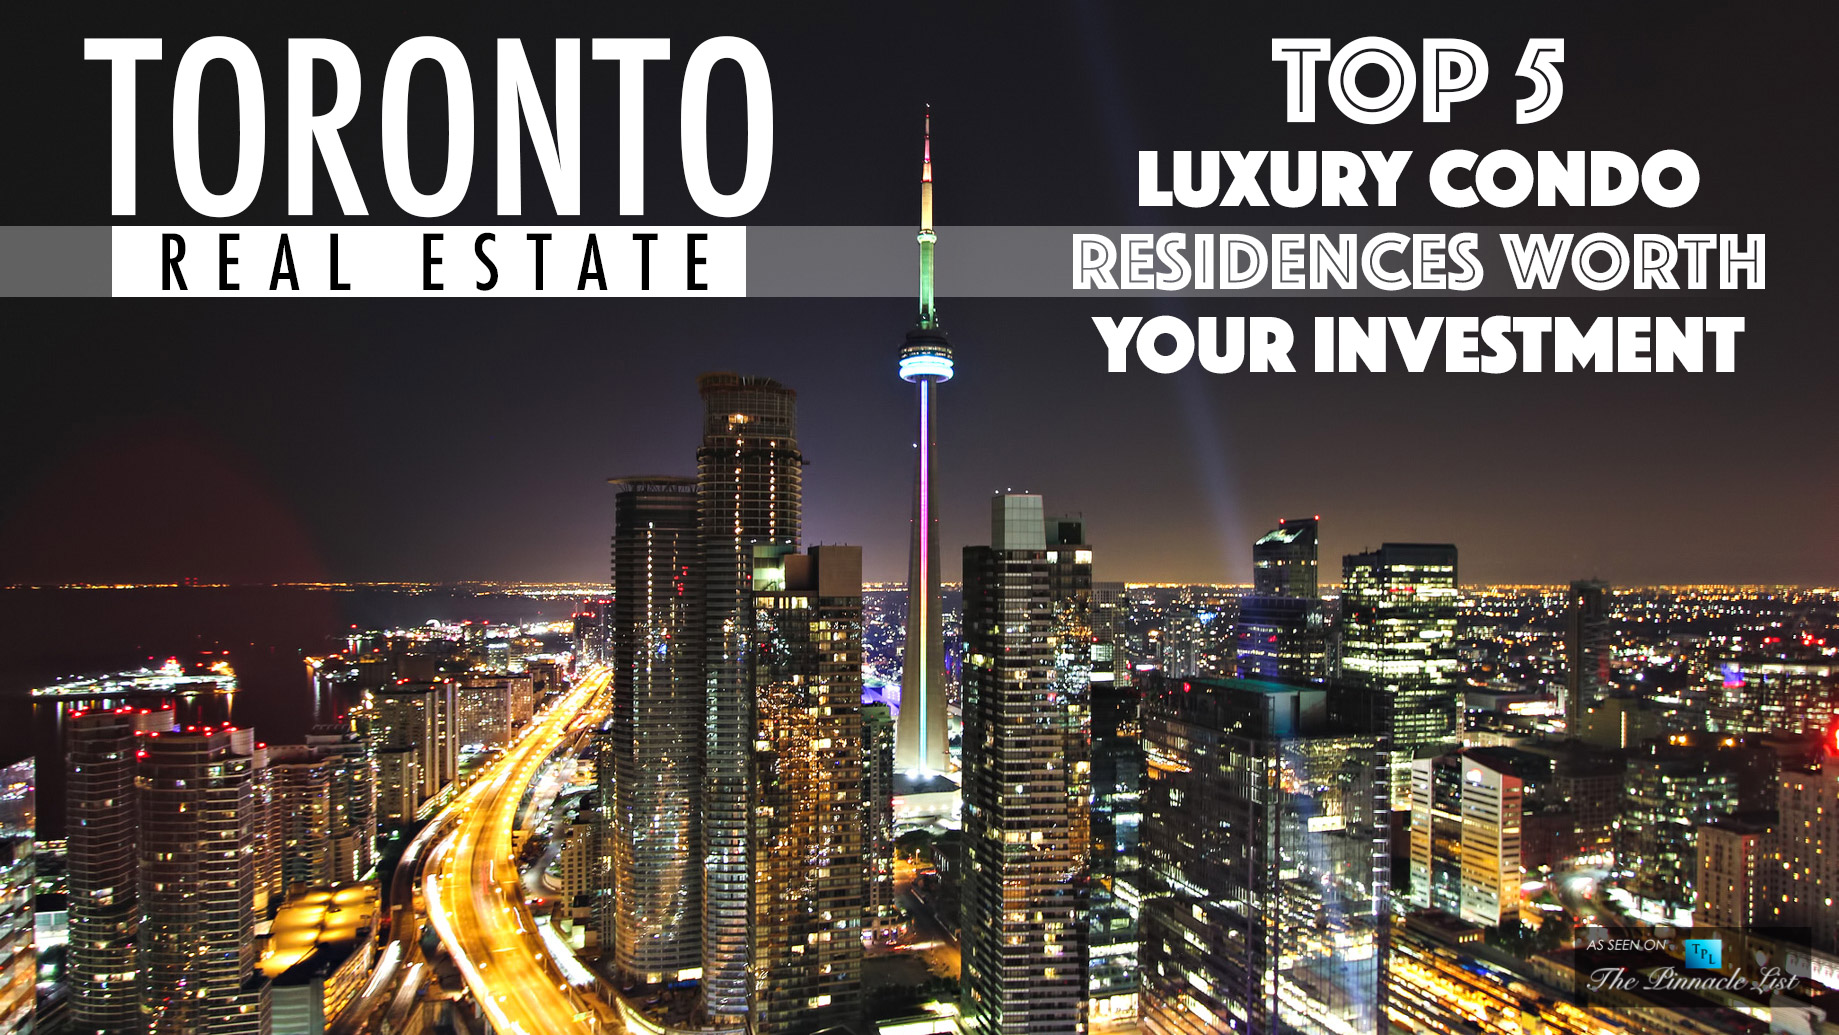 Toronto Real Estate - Top 5 Luxury Condo Residences Worth Your Investment